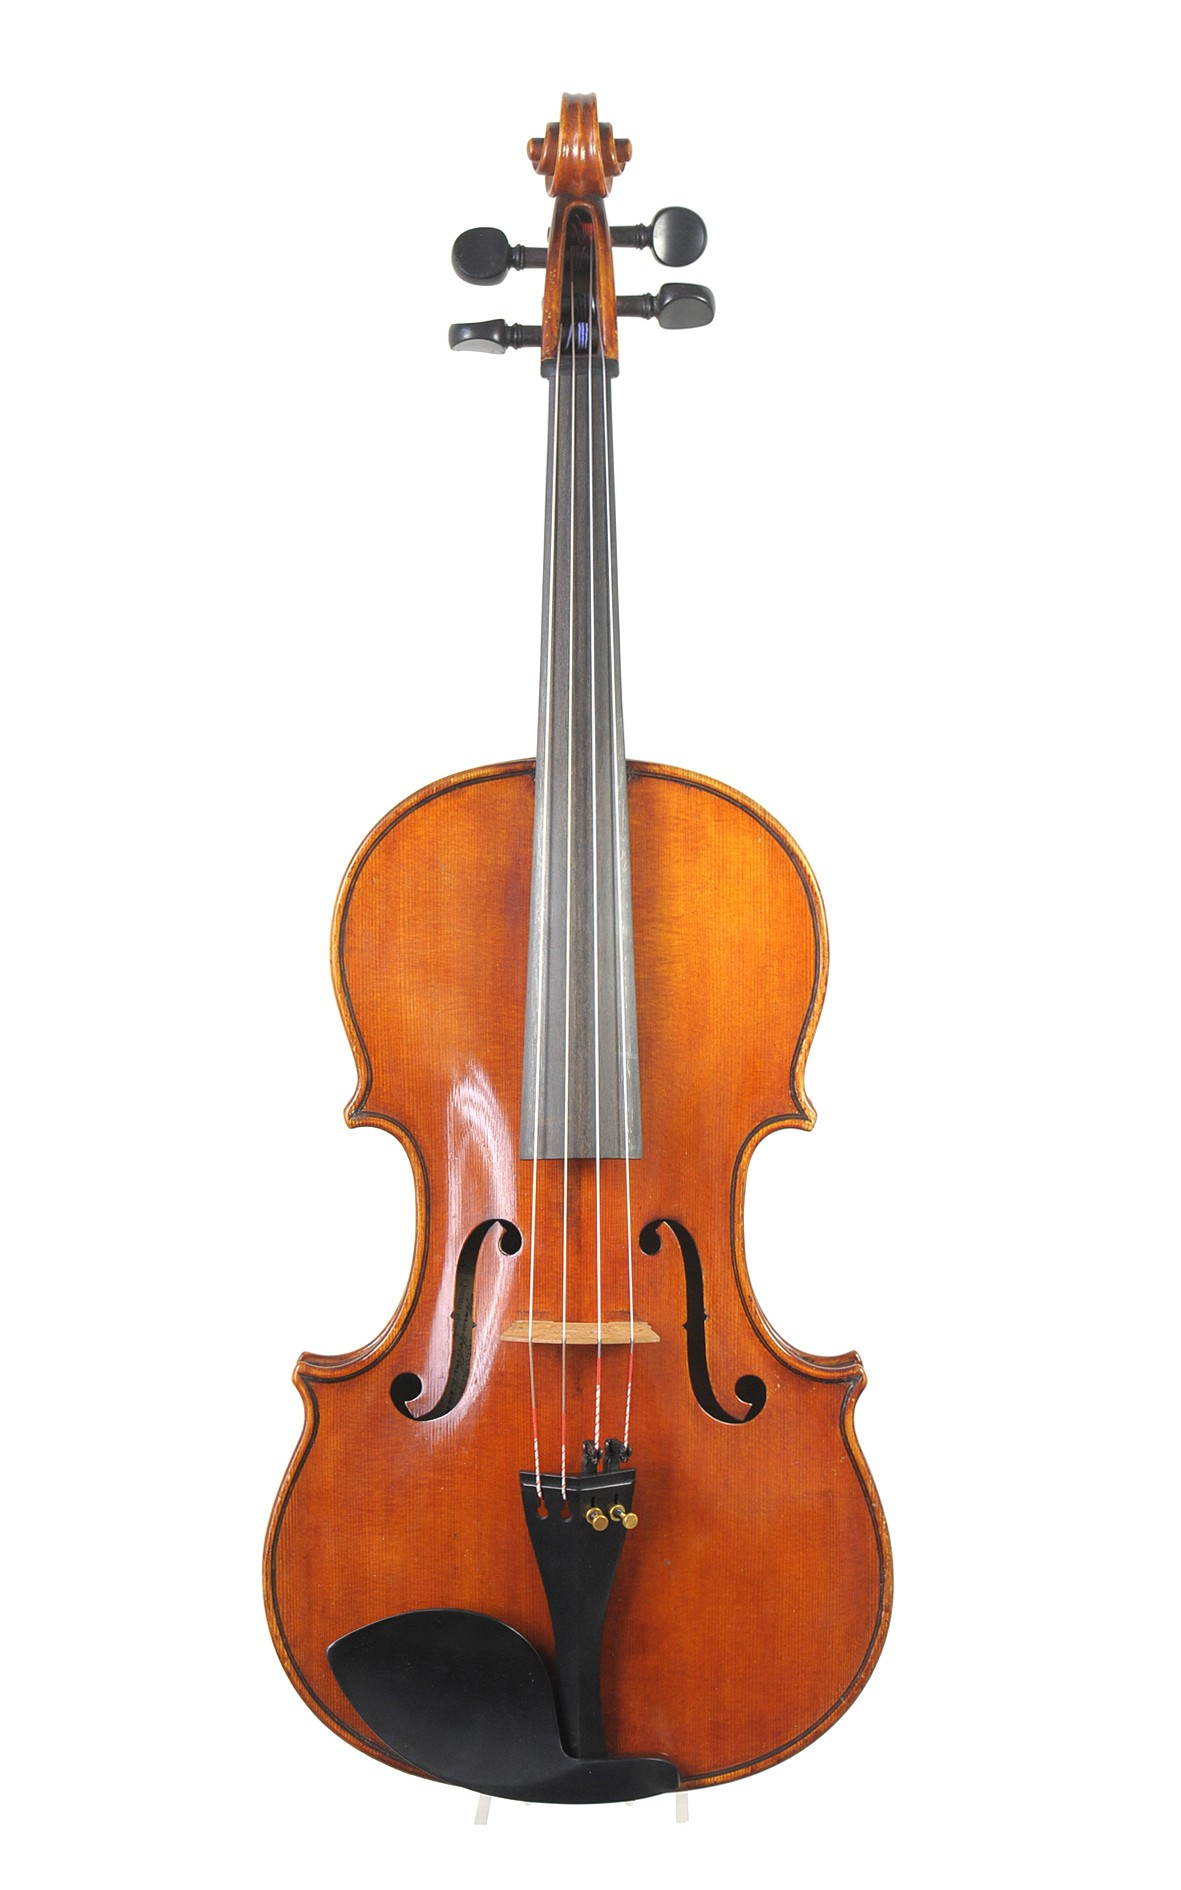 Italian viola by Marcello Martinenghi